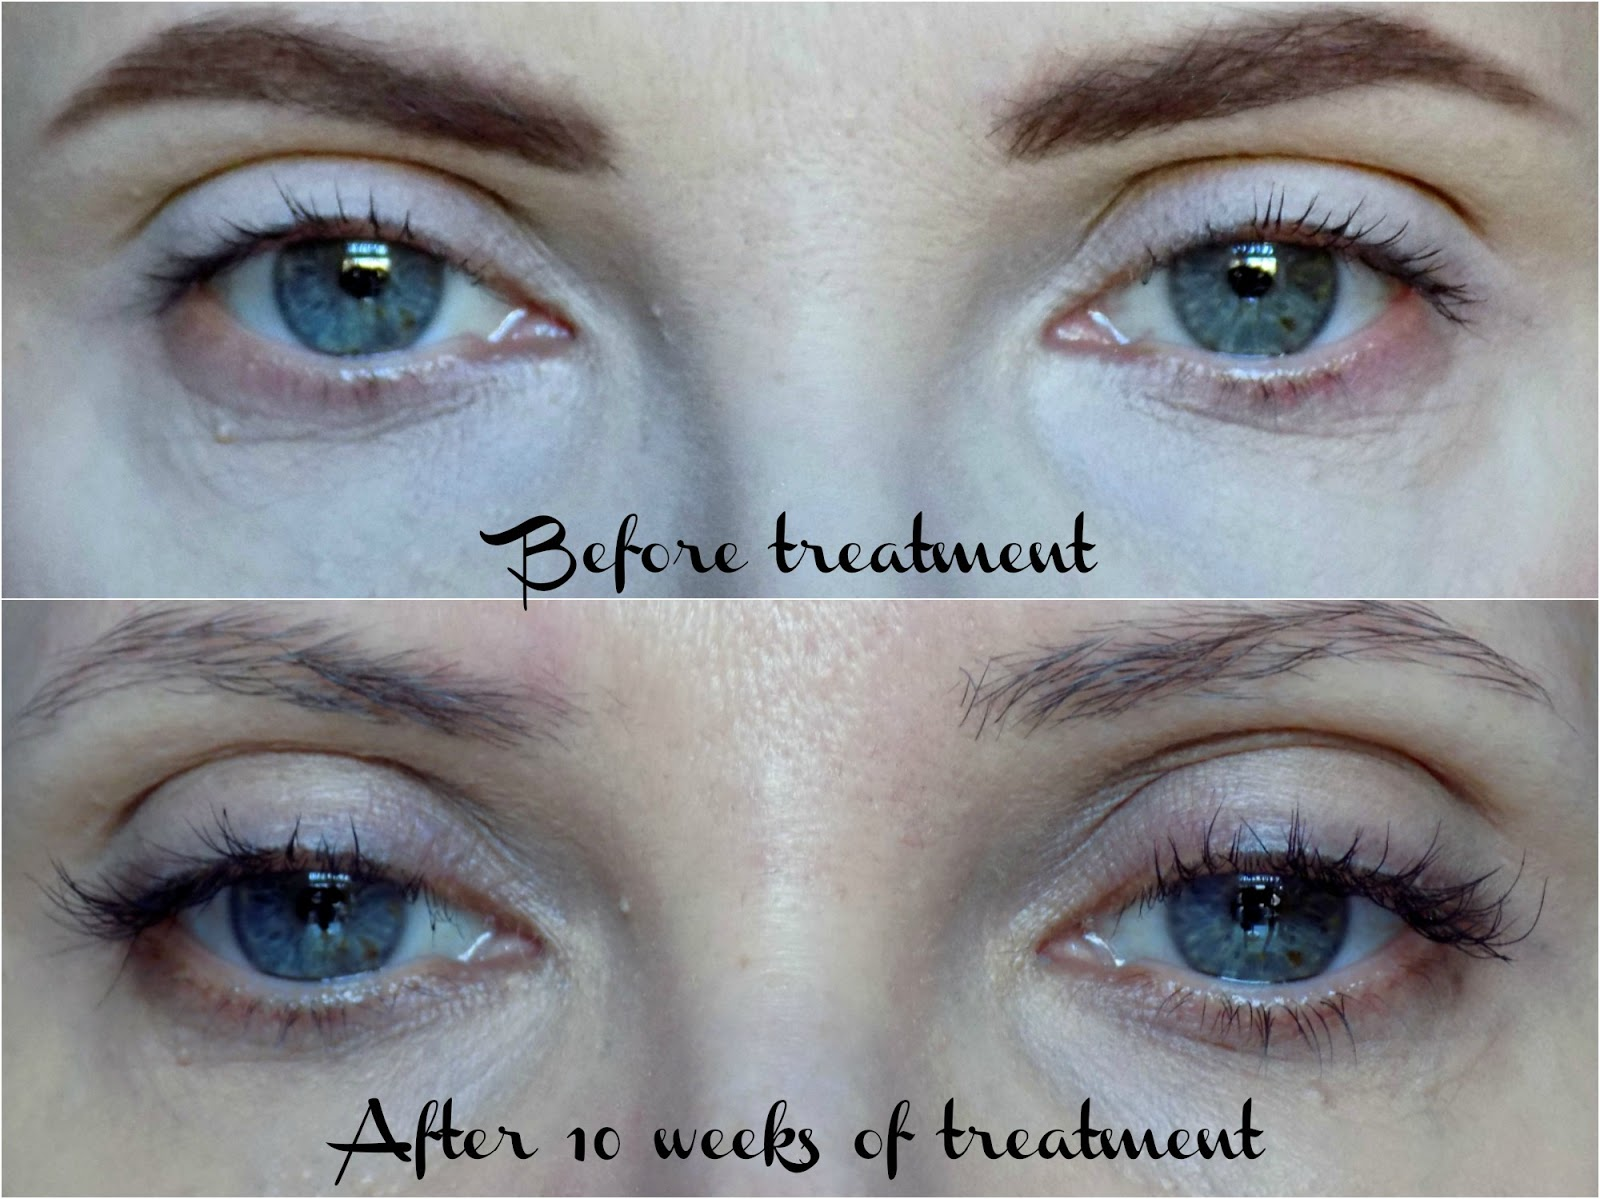 NYK1 Lash force Eyelash Serum - before & after photos